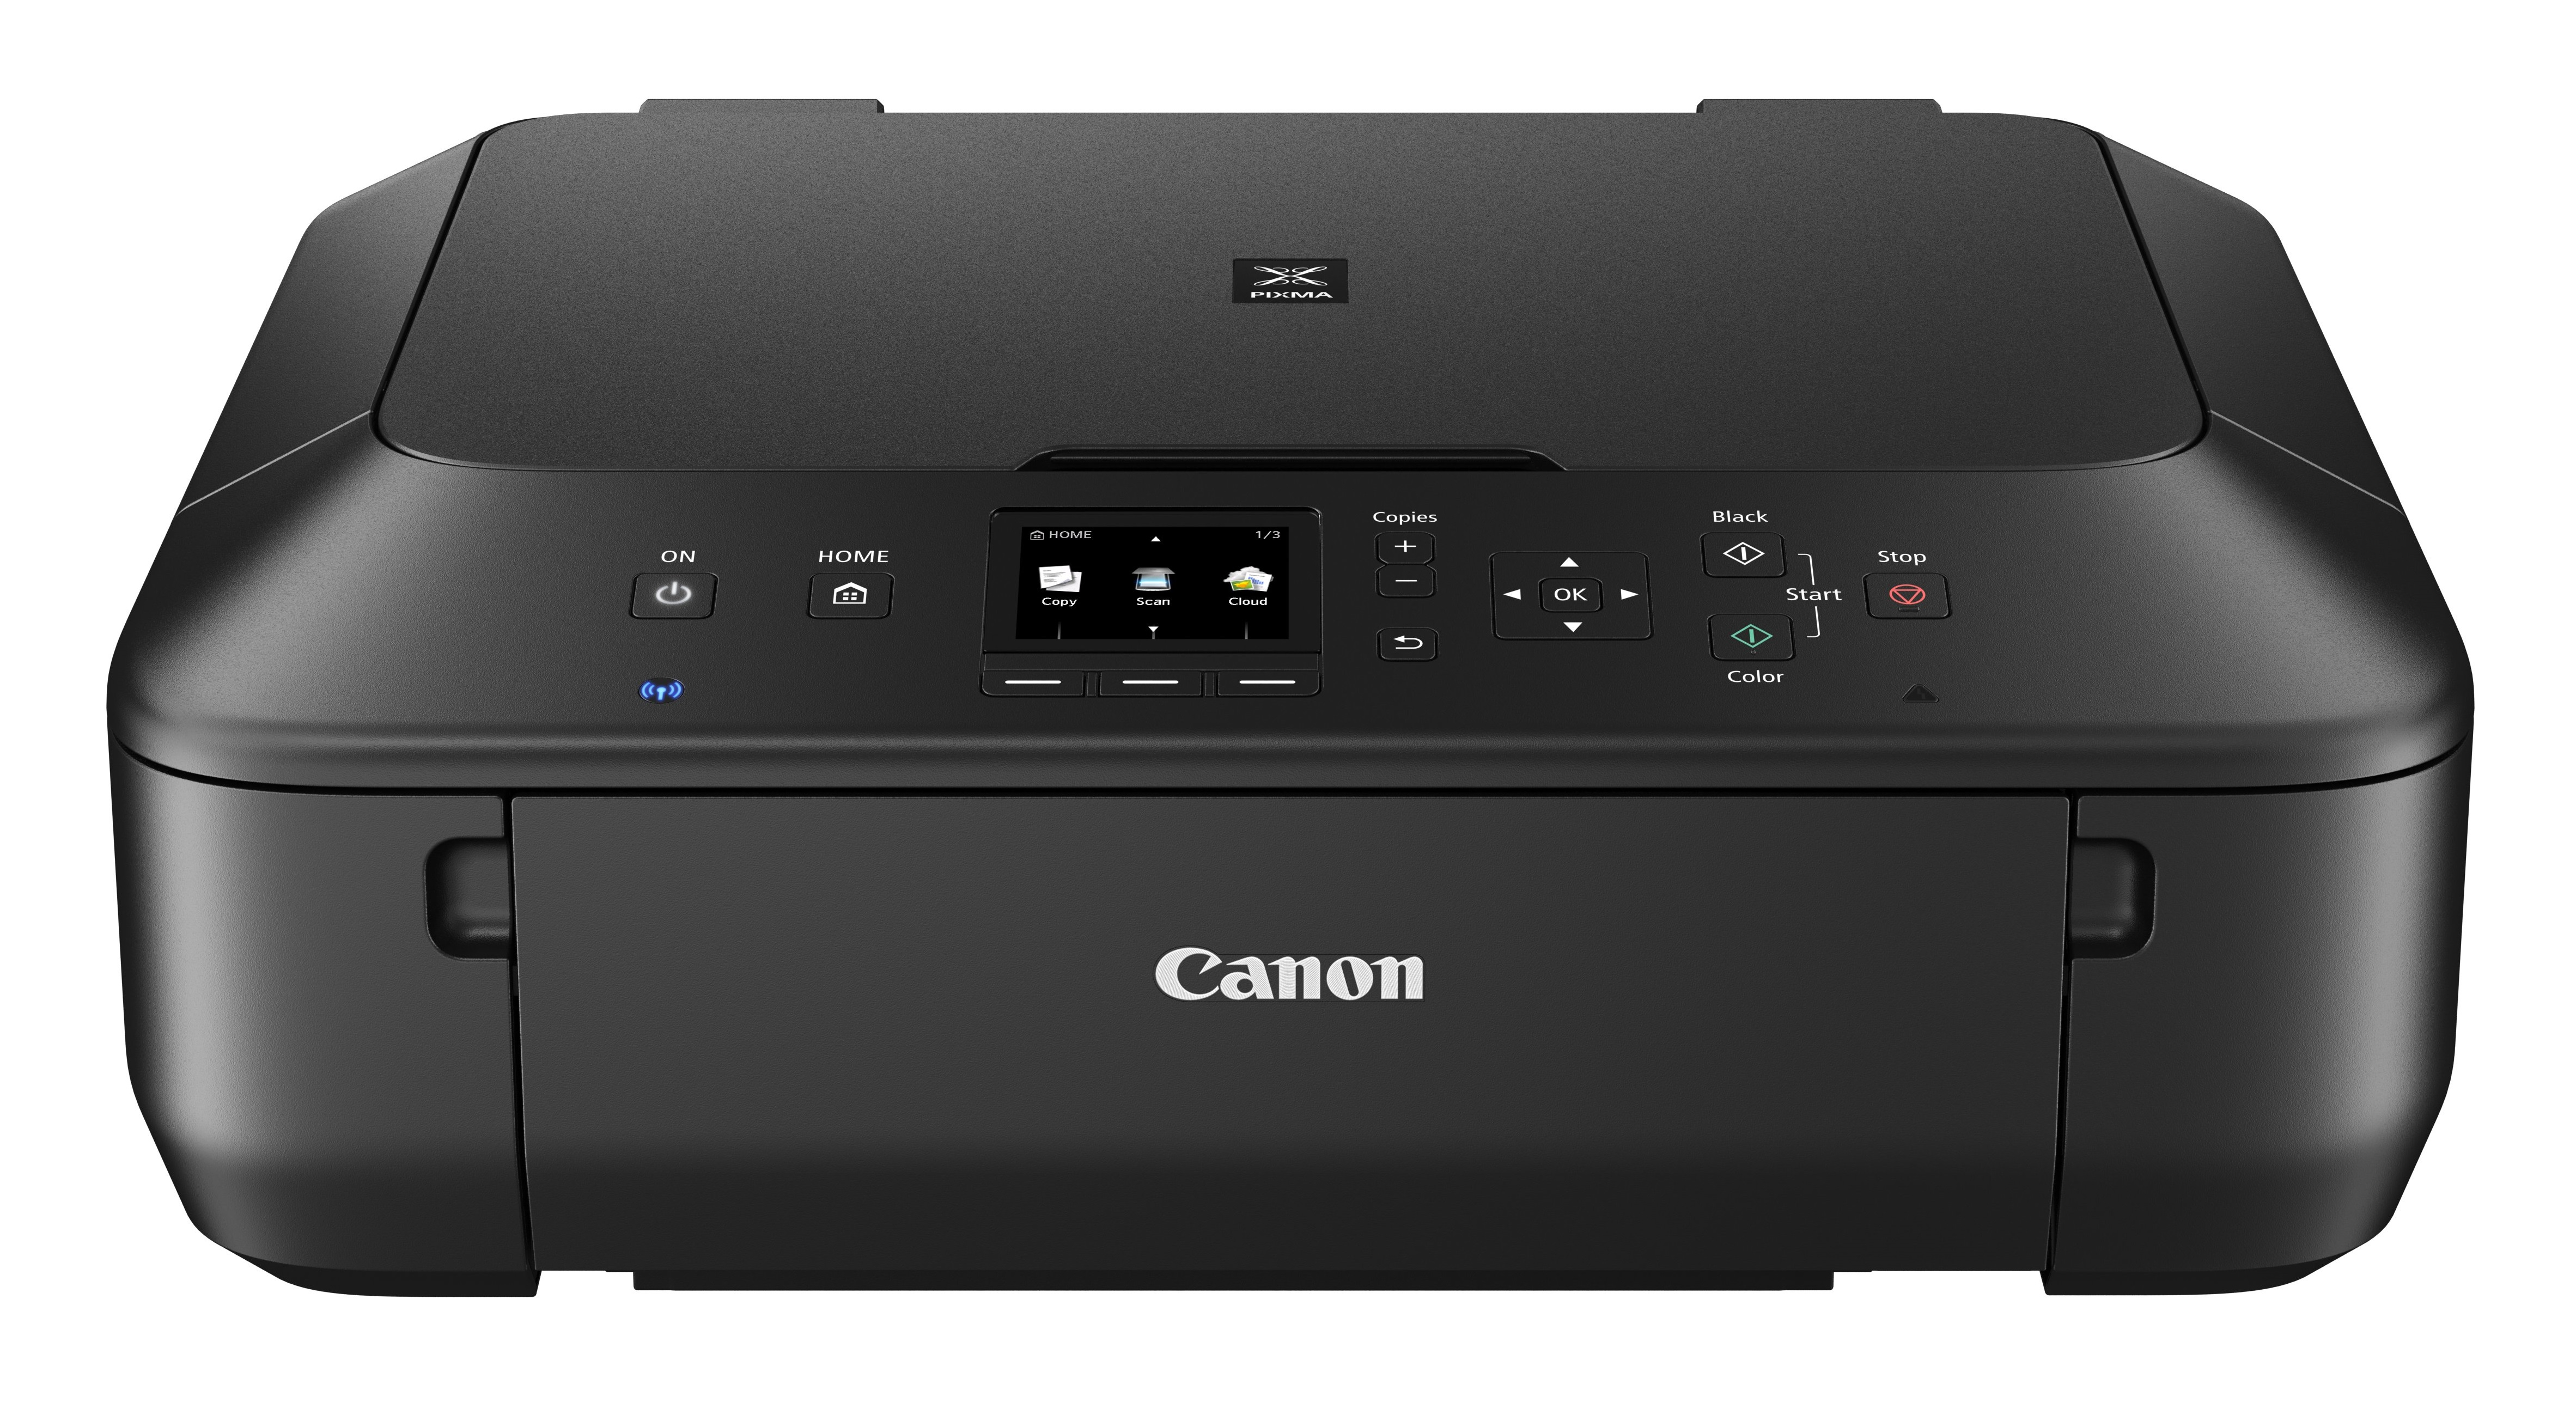 canon service center in medavakkam, canon printer service center in medavakkam